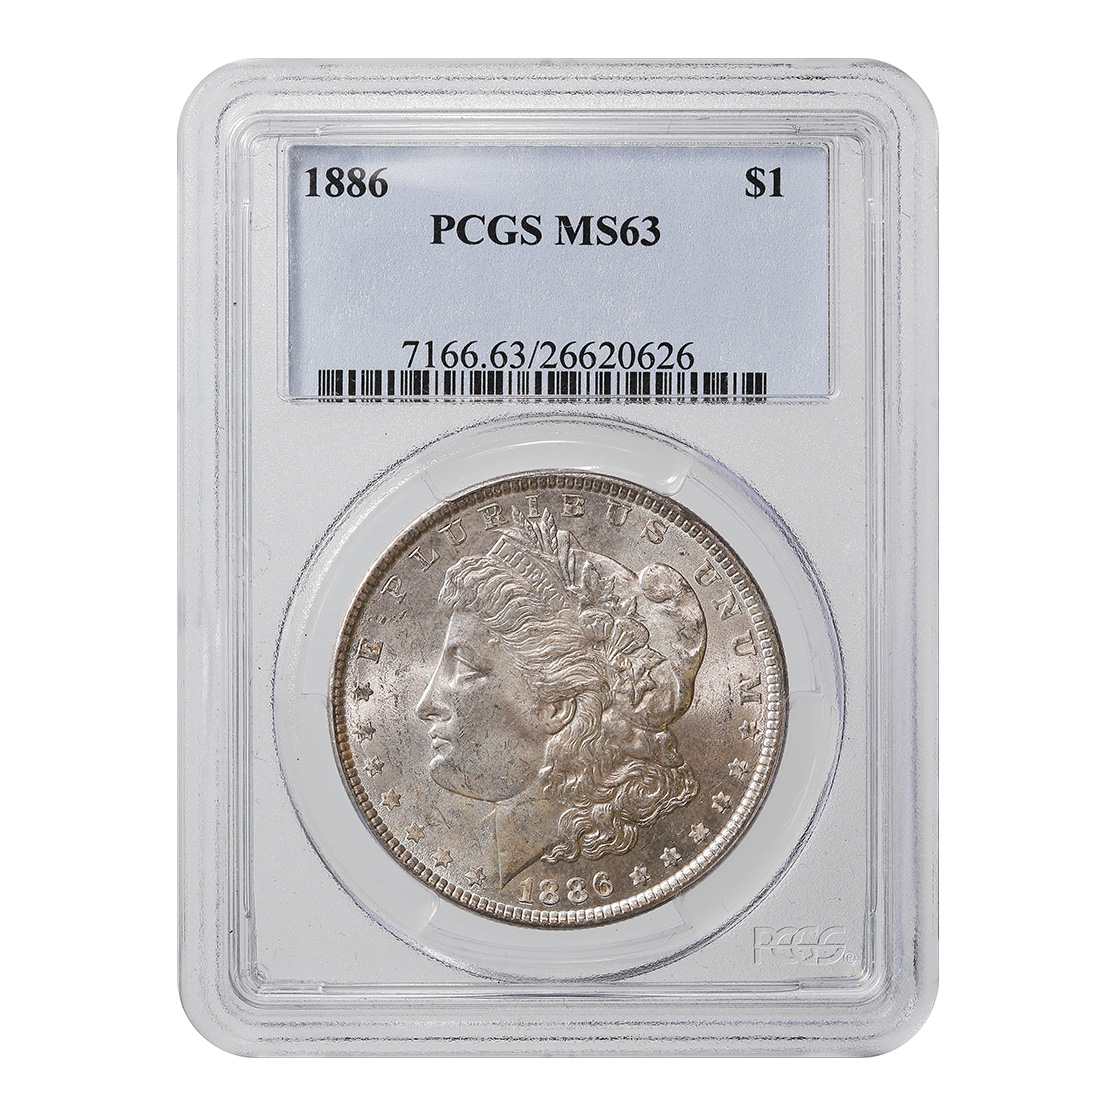 Certified Morgan Silver Dollar 1886 MS63 PCGS